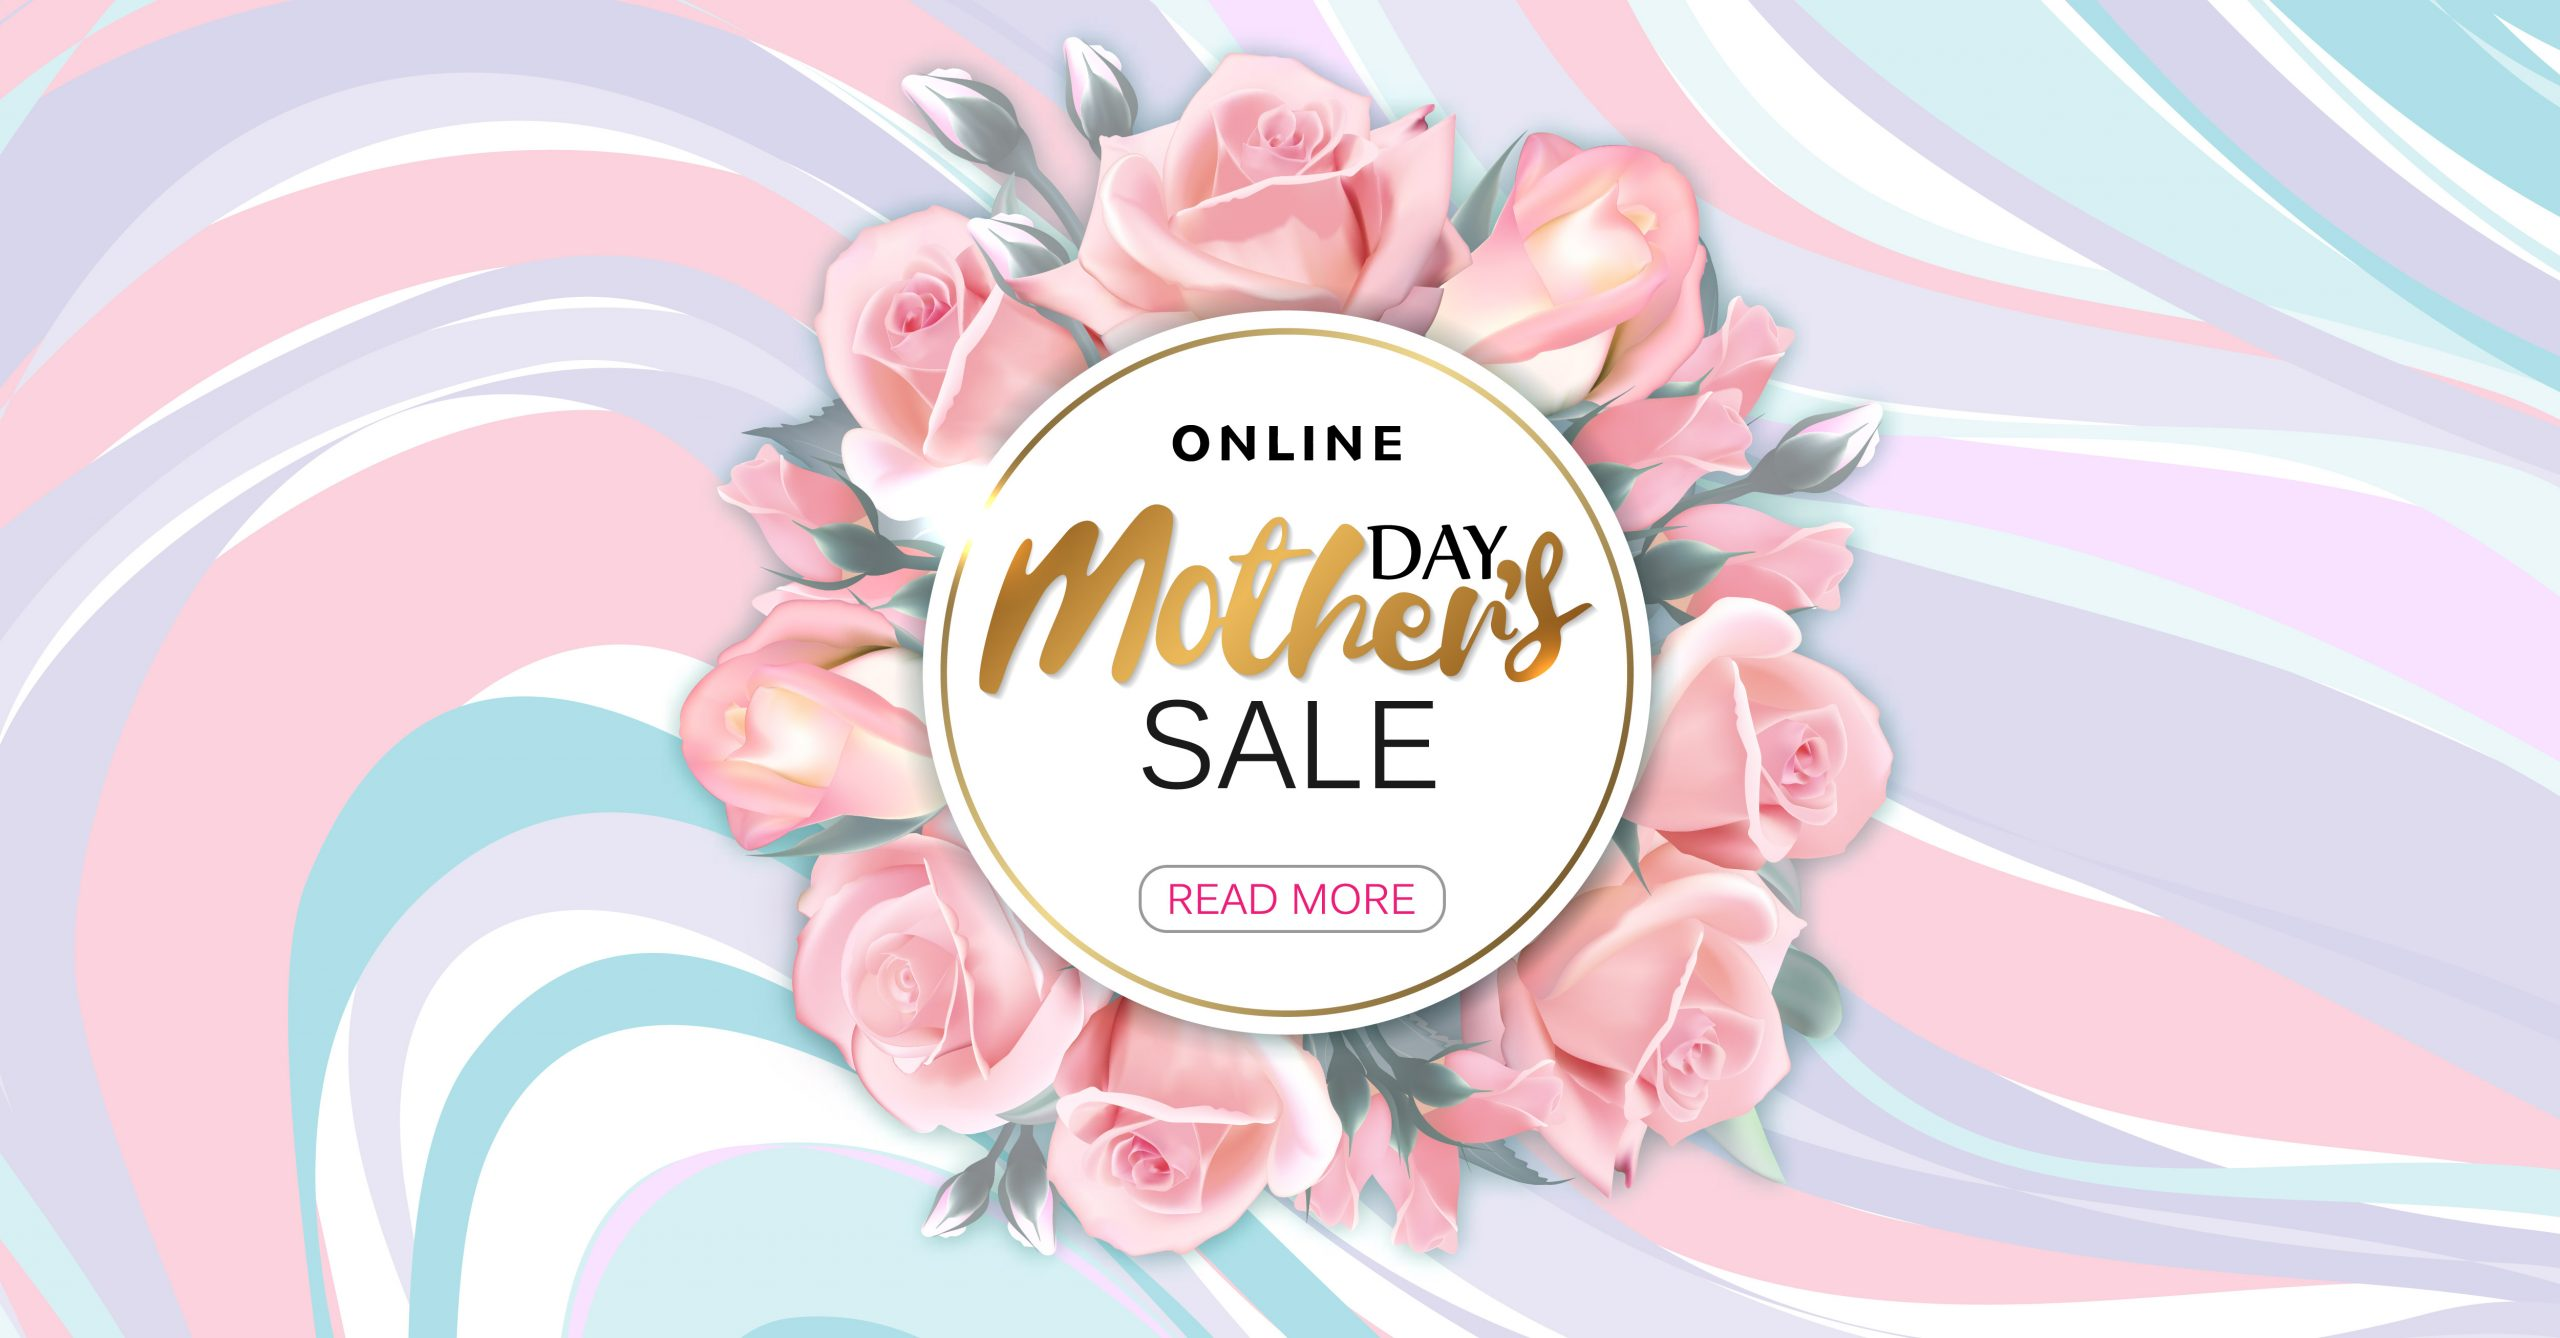 How To Launch A Sweet Online Mother's Day Sale 01